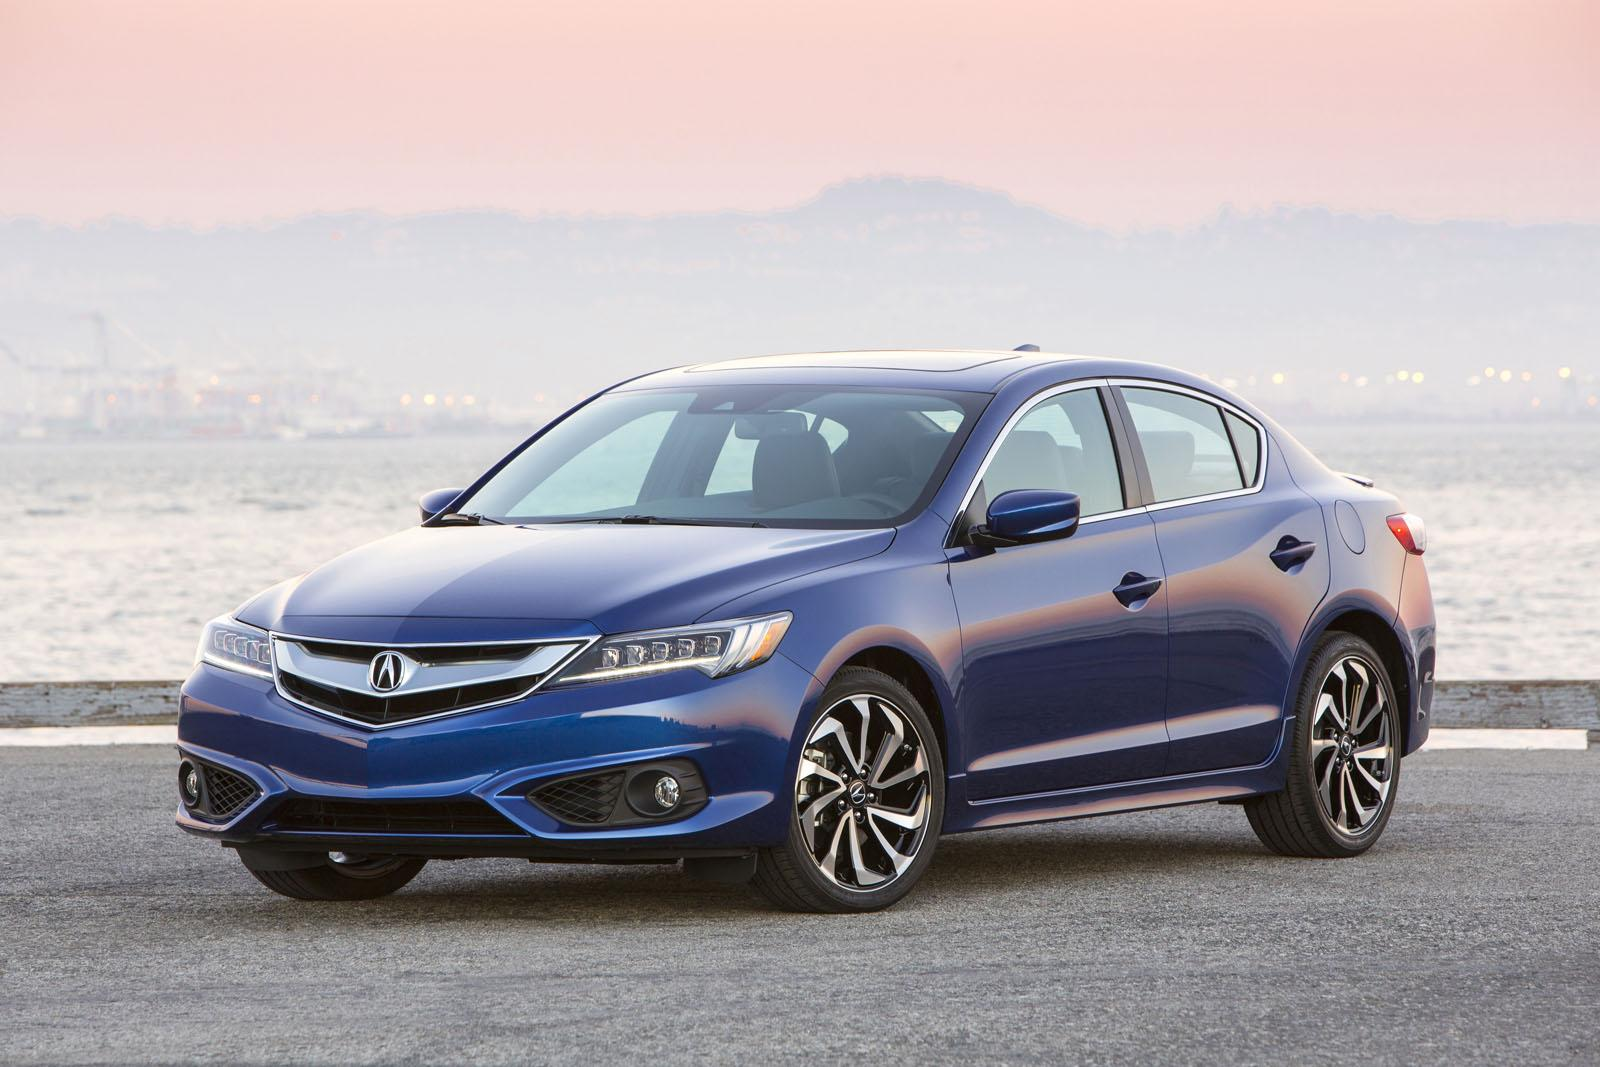 2016 Acura ILX 3 2016 Acura ILX Features and details